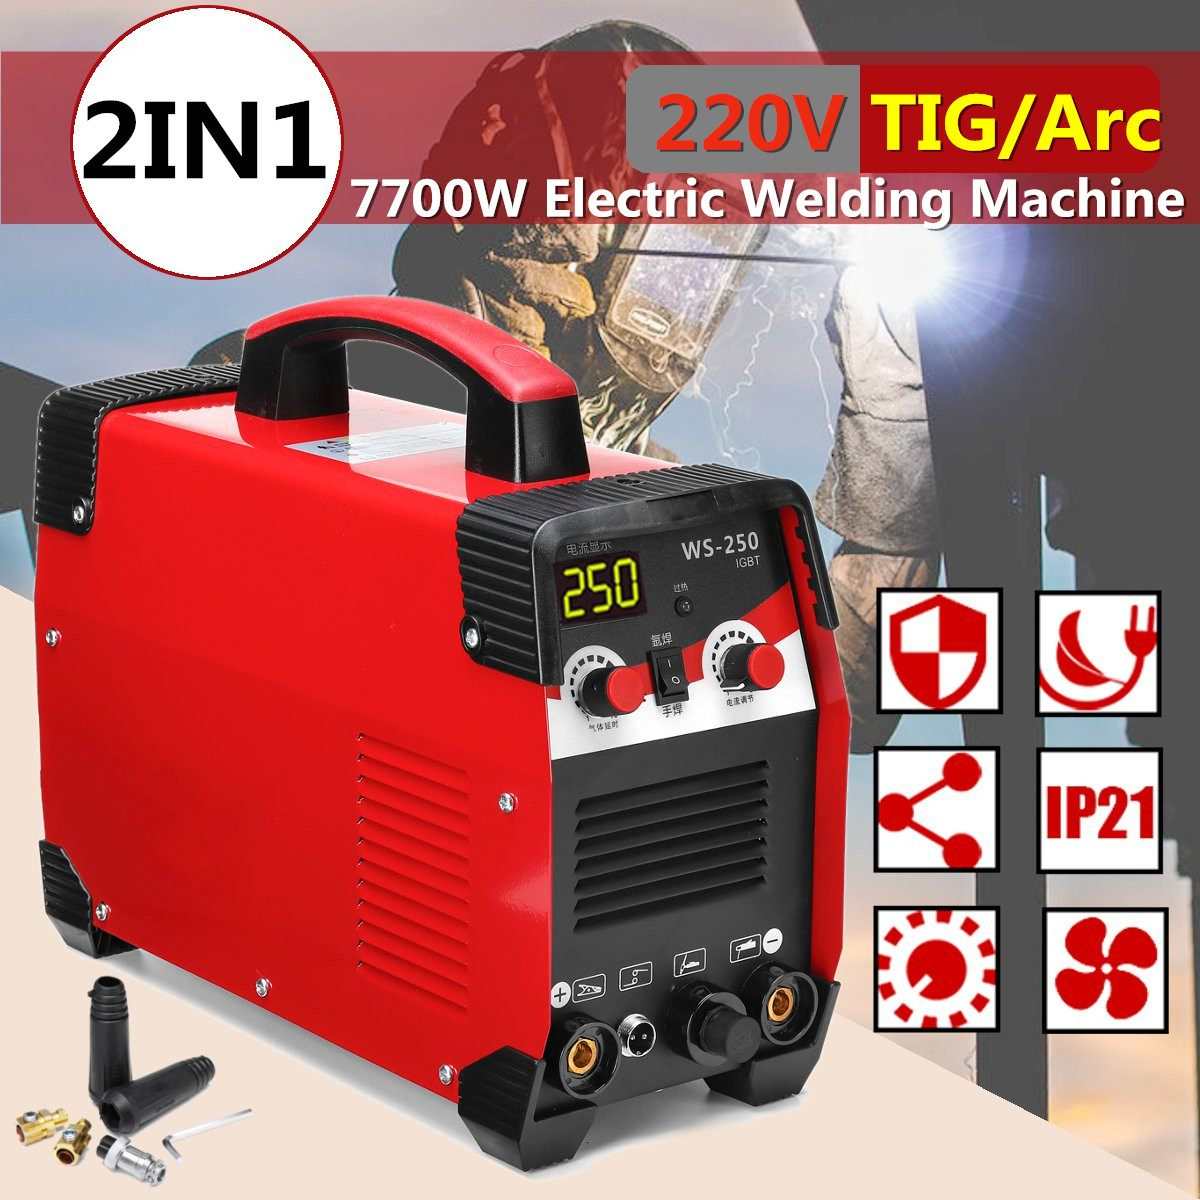 220V 7700W 20 250A 2IN1 TIG/ARC Electric Welding Machine MMA IGBT STICK Inverter For Welding Working and Electric Working